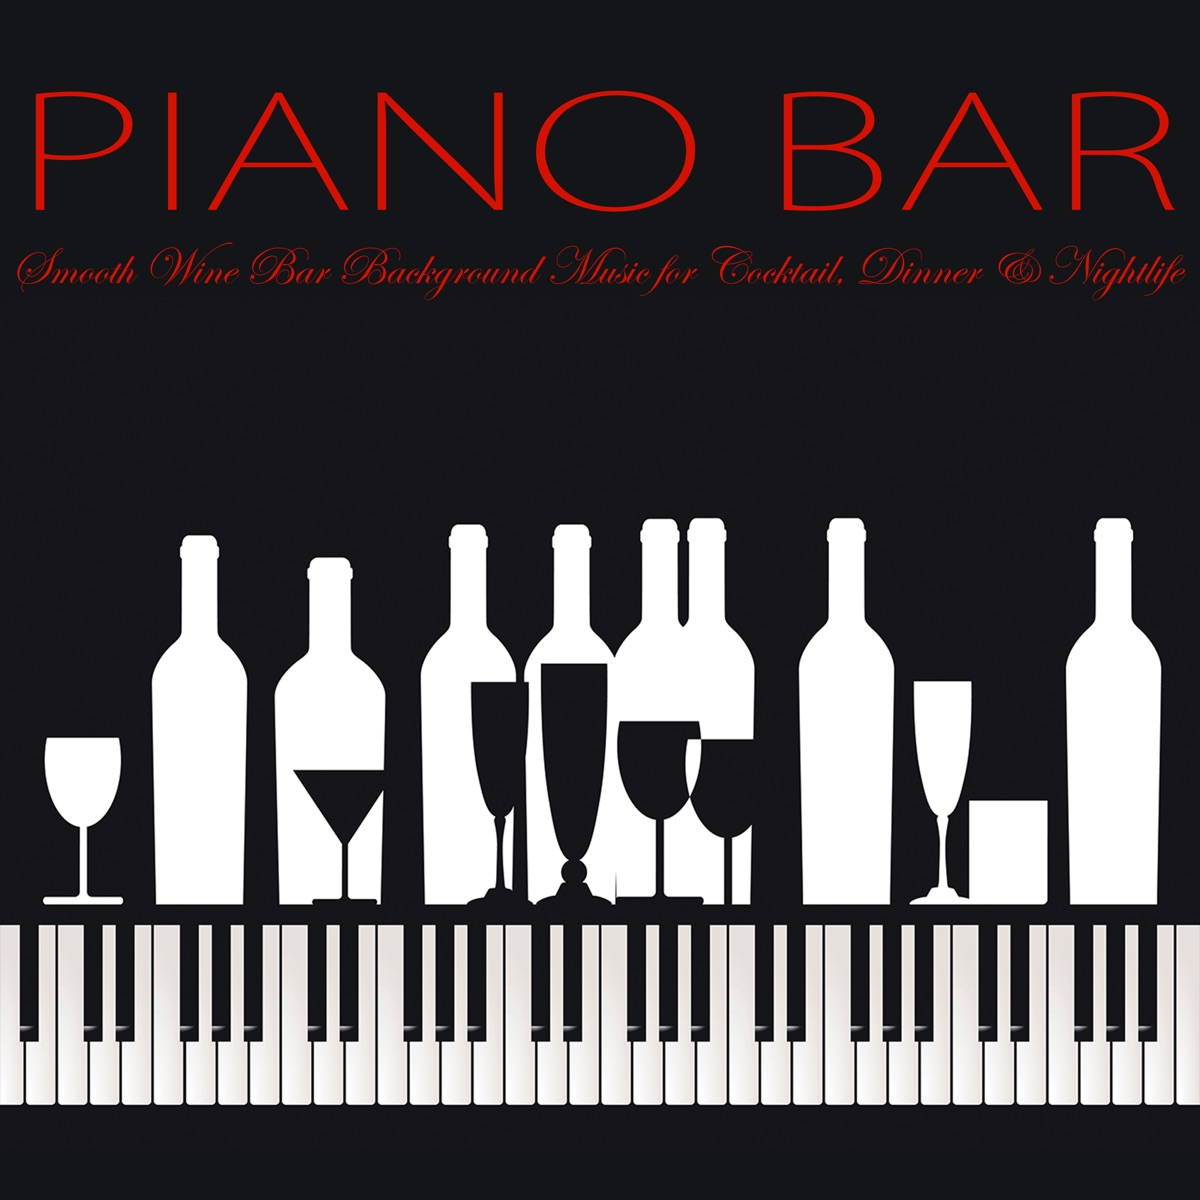 Piano Bar – Smooth Wine Bar Background Music for Cocktail